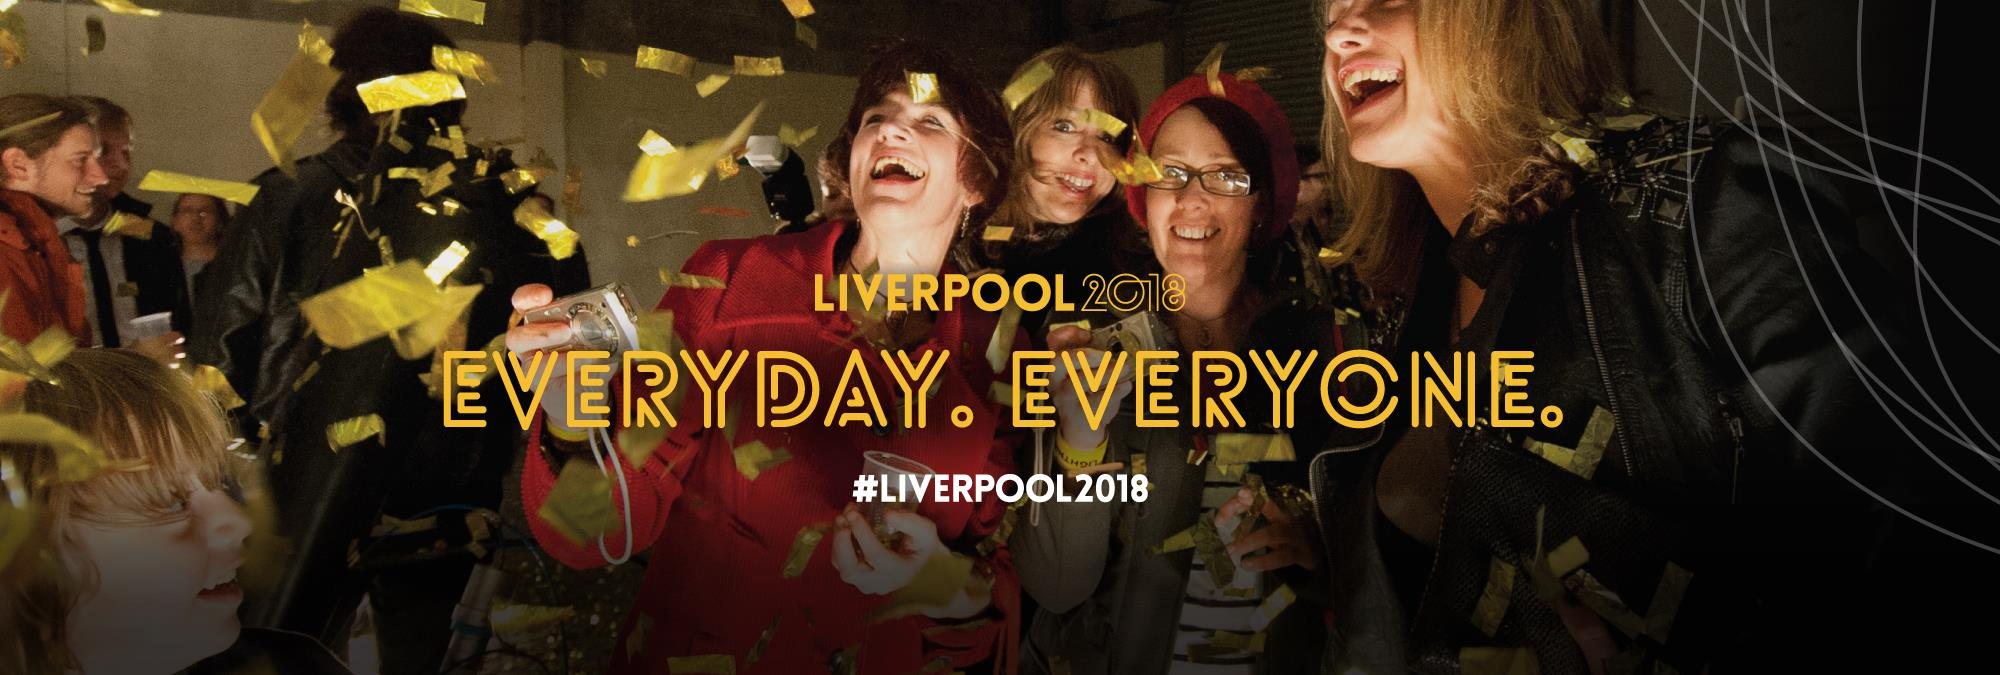 Liverpool 2018. Everyday. Everyone.